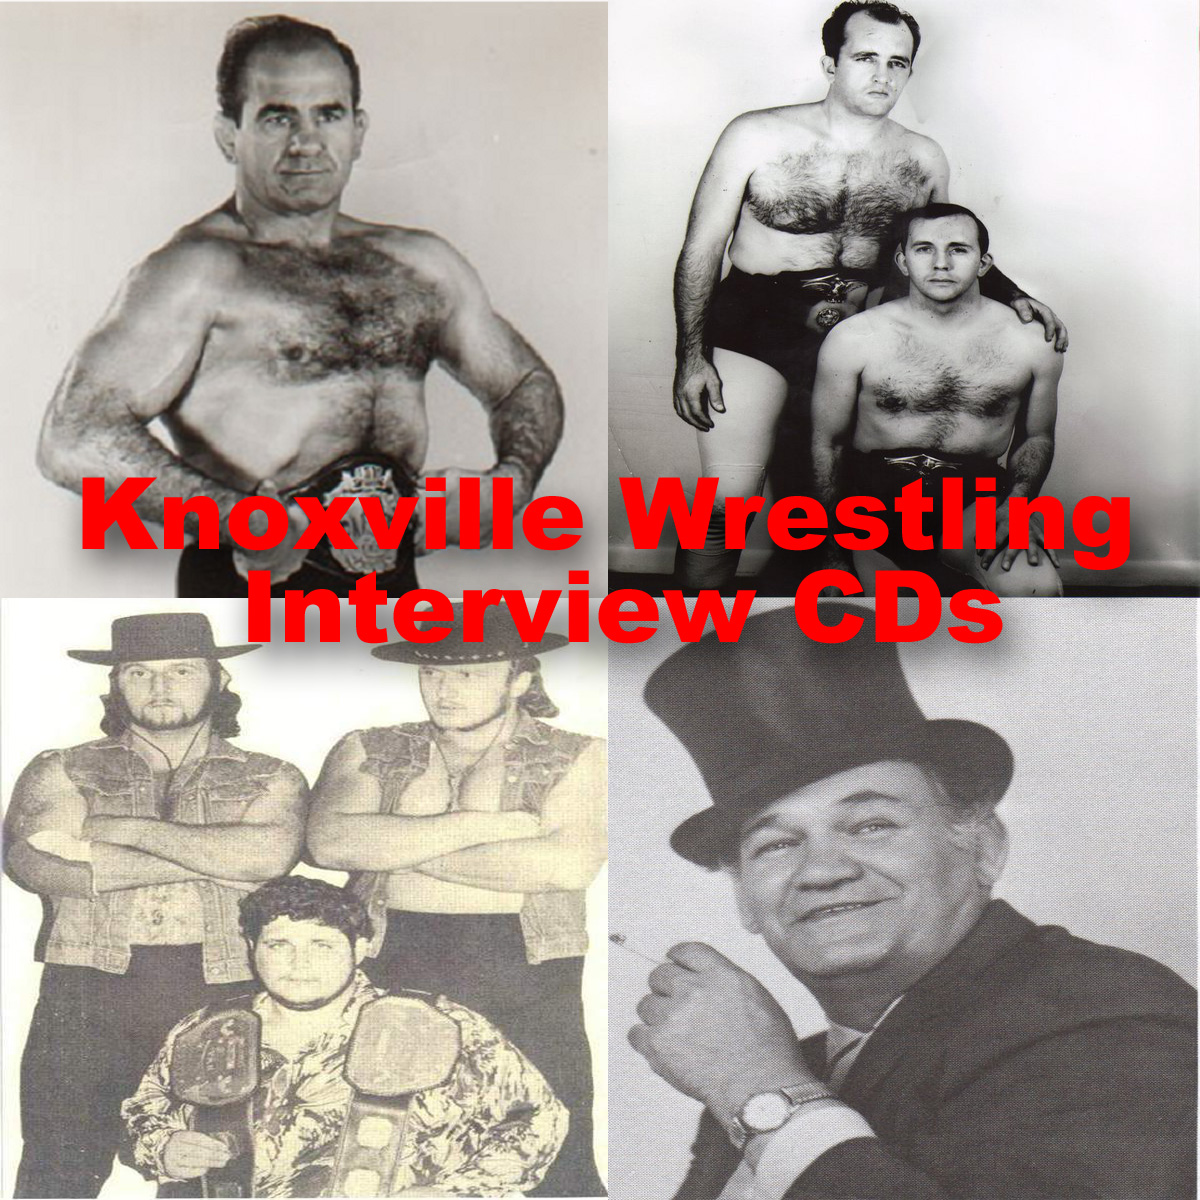 Knoxville Wrestling 1970s Audio CDs only $12